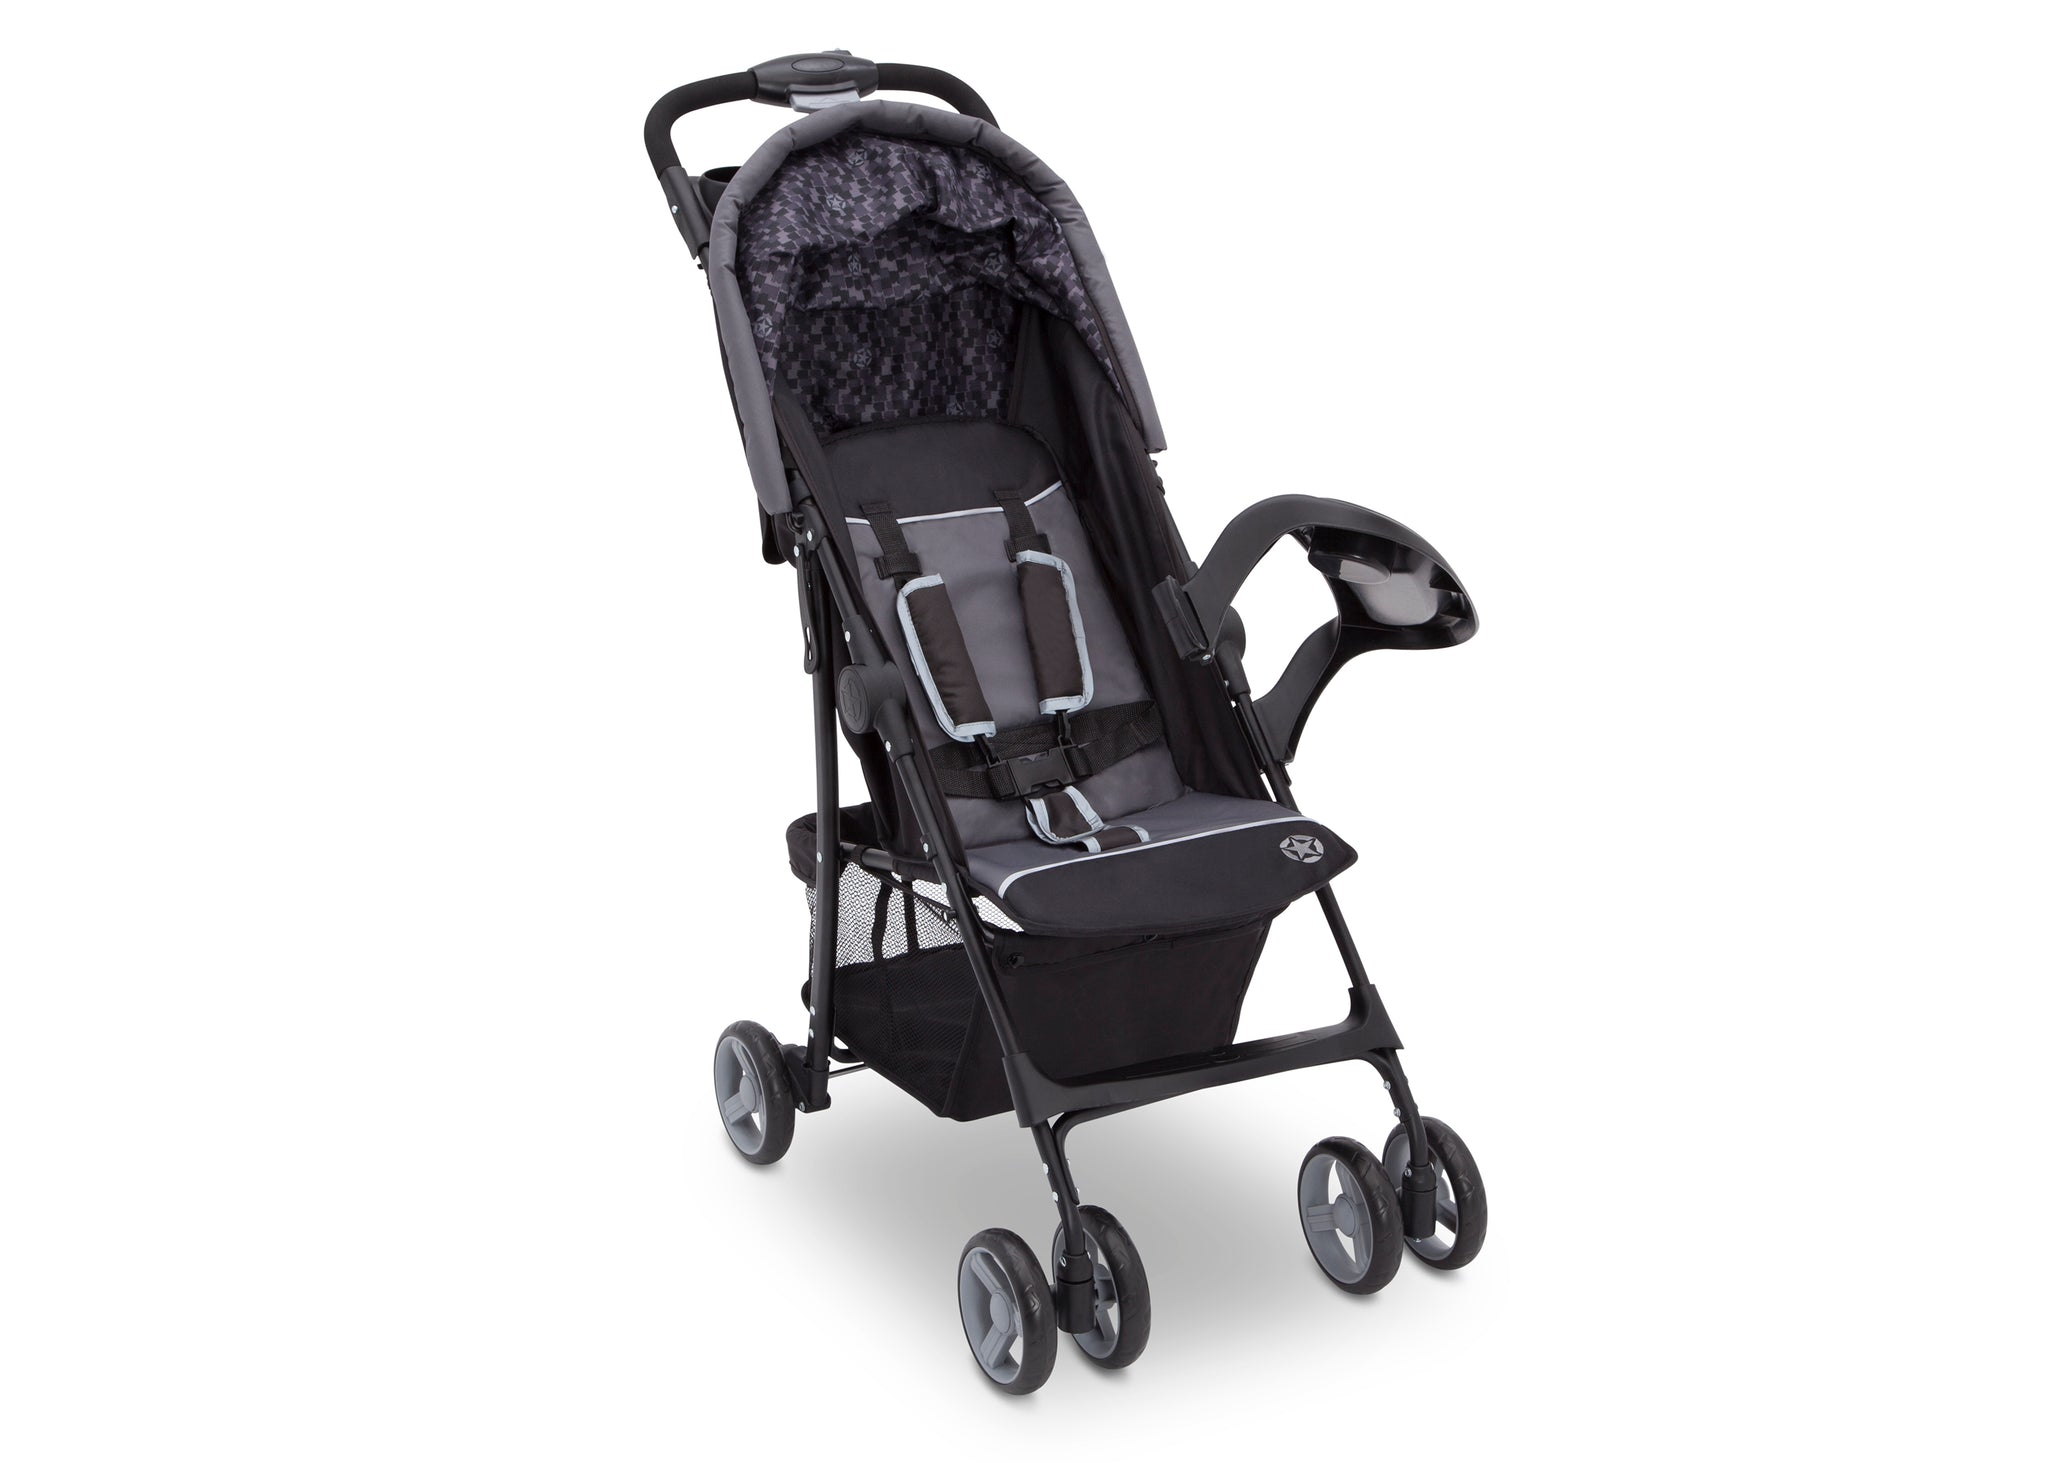 Delta Children Brushstrokes (2029) J is for Jeep Brand Metro Stroller Right Side View, without Canopy and Child Tray d2d